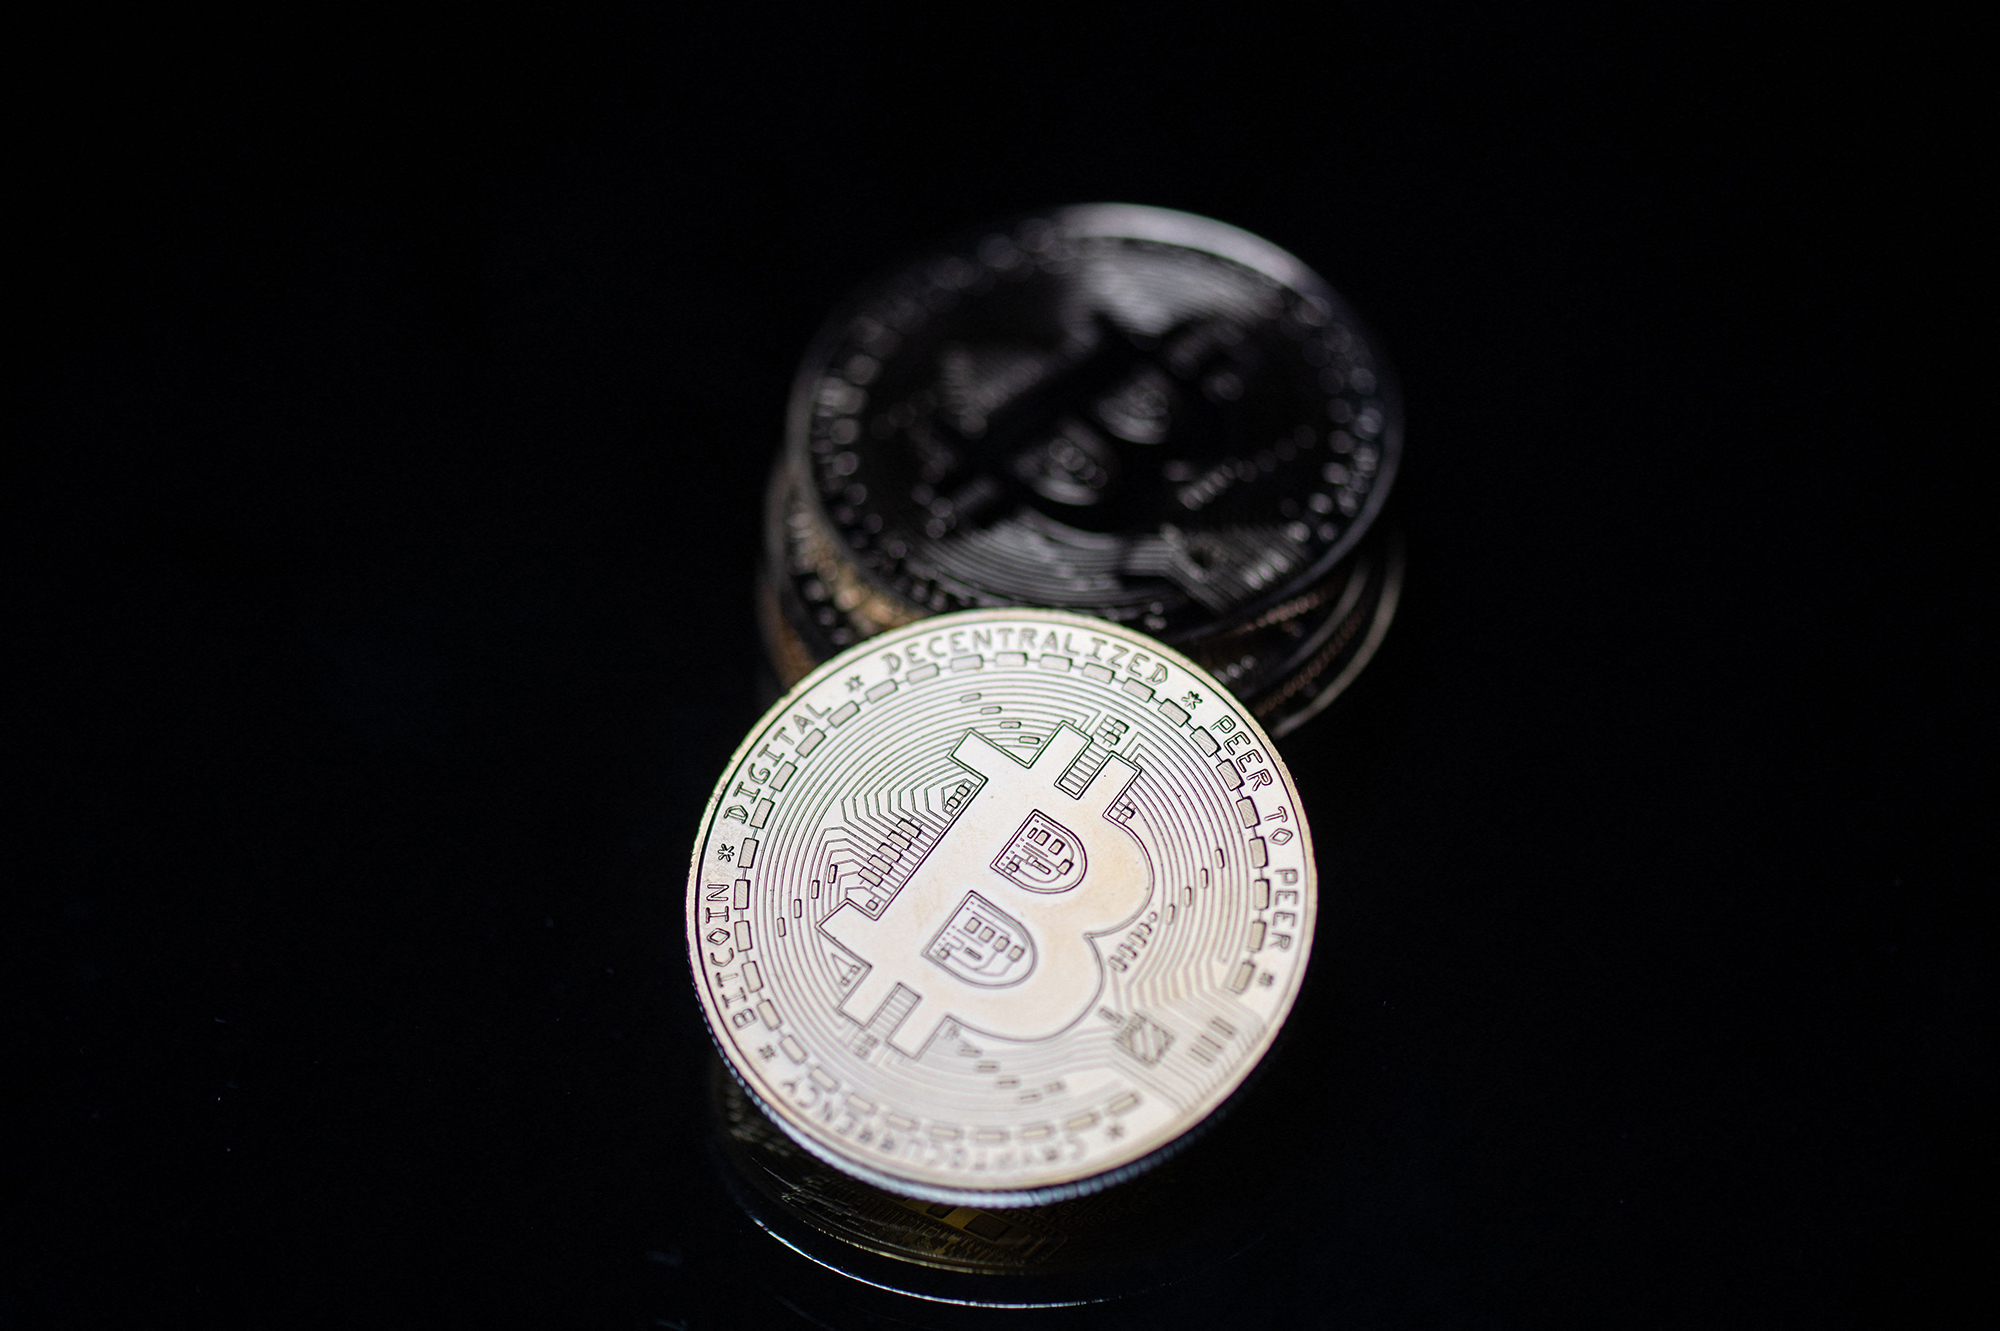 This photograph taken on April 26, 2021 in Paris shows a physical imitation of the Bitcoin crypto currency.